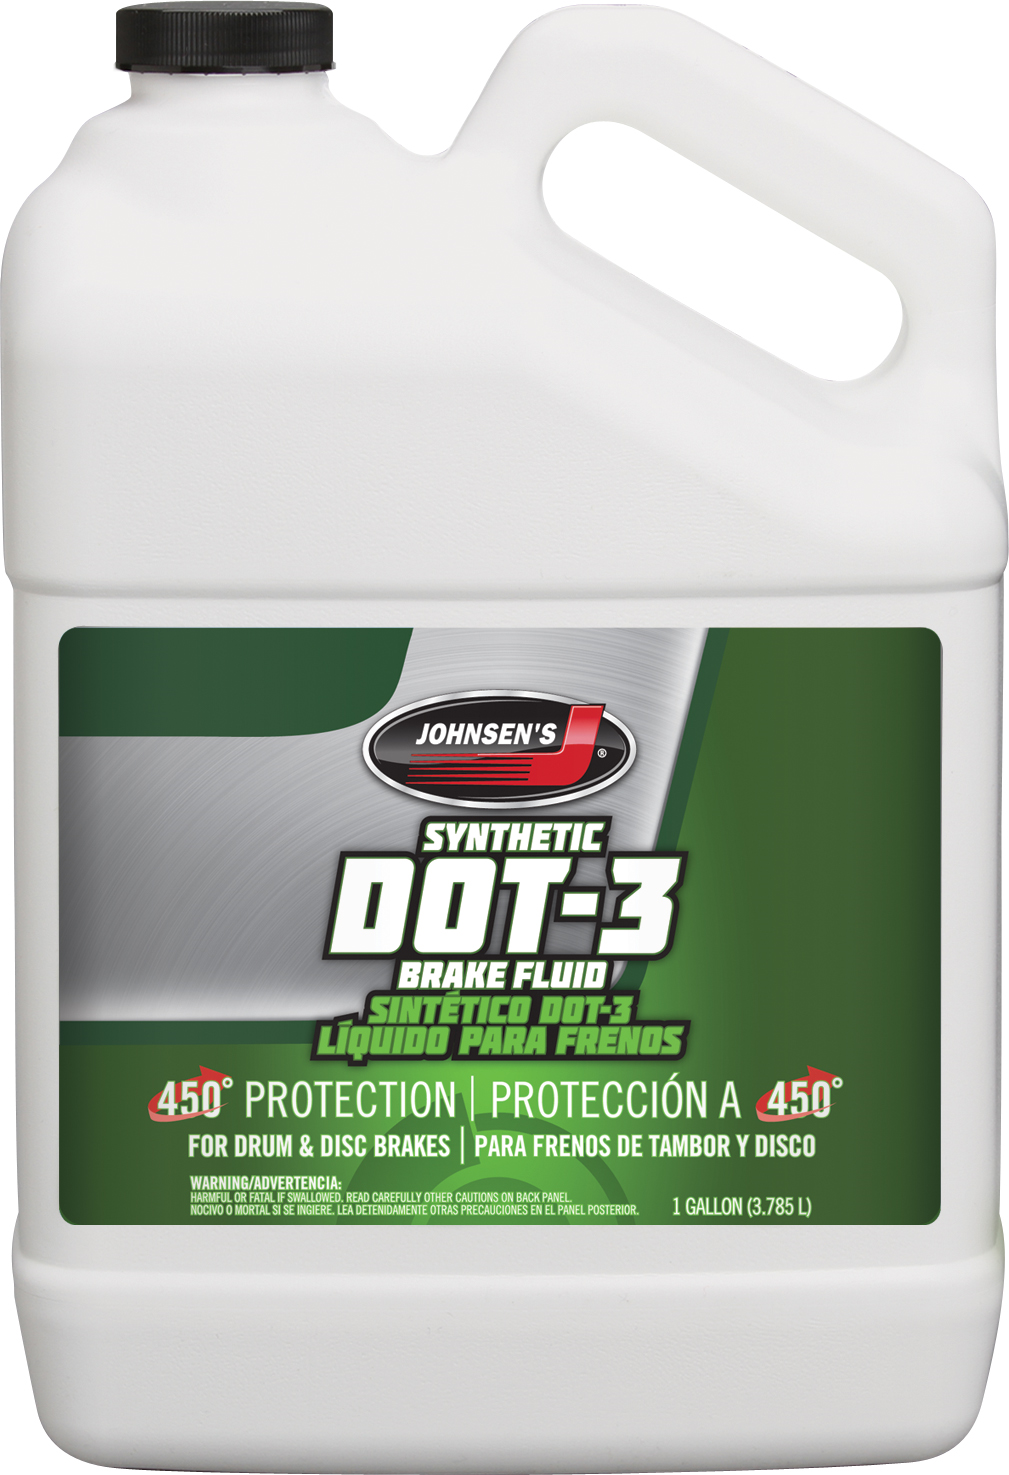 Cleaners - Brake Parts Cleaner - Page 1 - Johnsen's